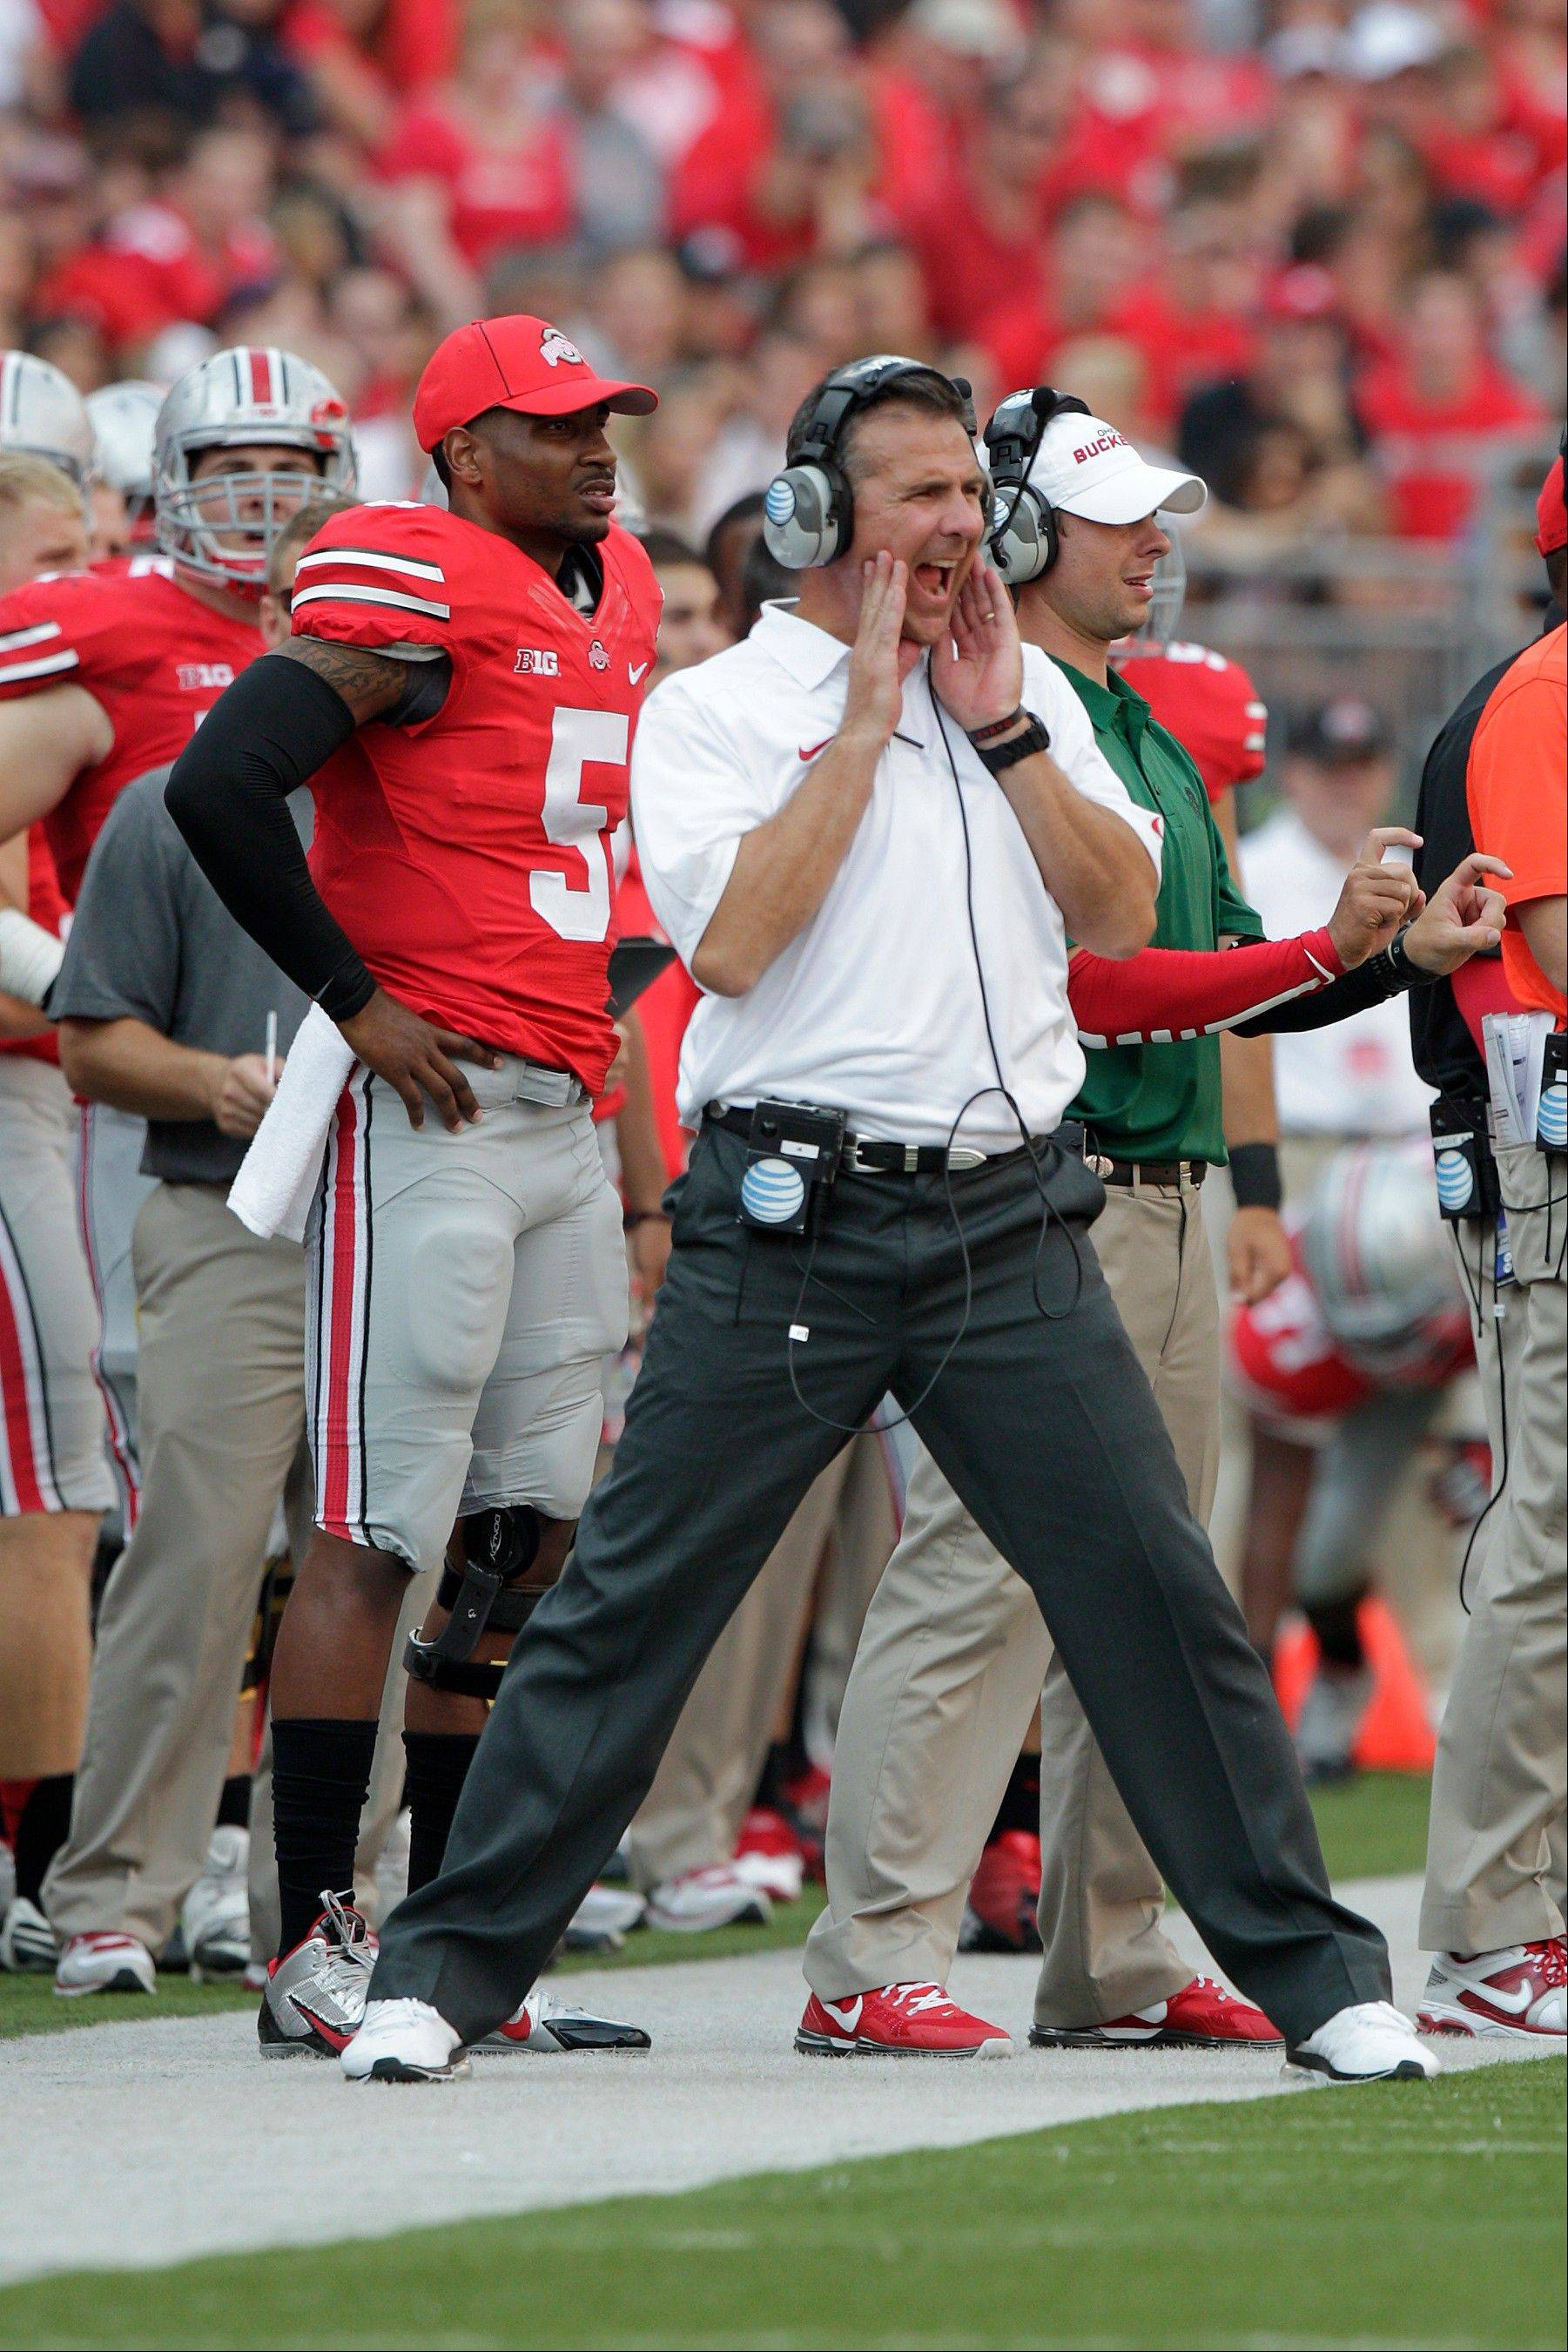 Ohio State head coach Urban Meyer watches from the sidelines during a game against San Diego State earlier this season in Columbus, Ohio. The Buckeyes have won 18 straight.